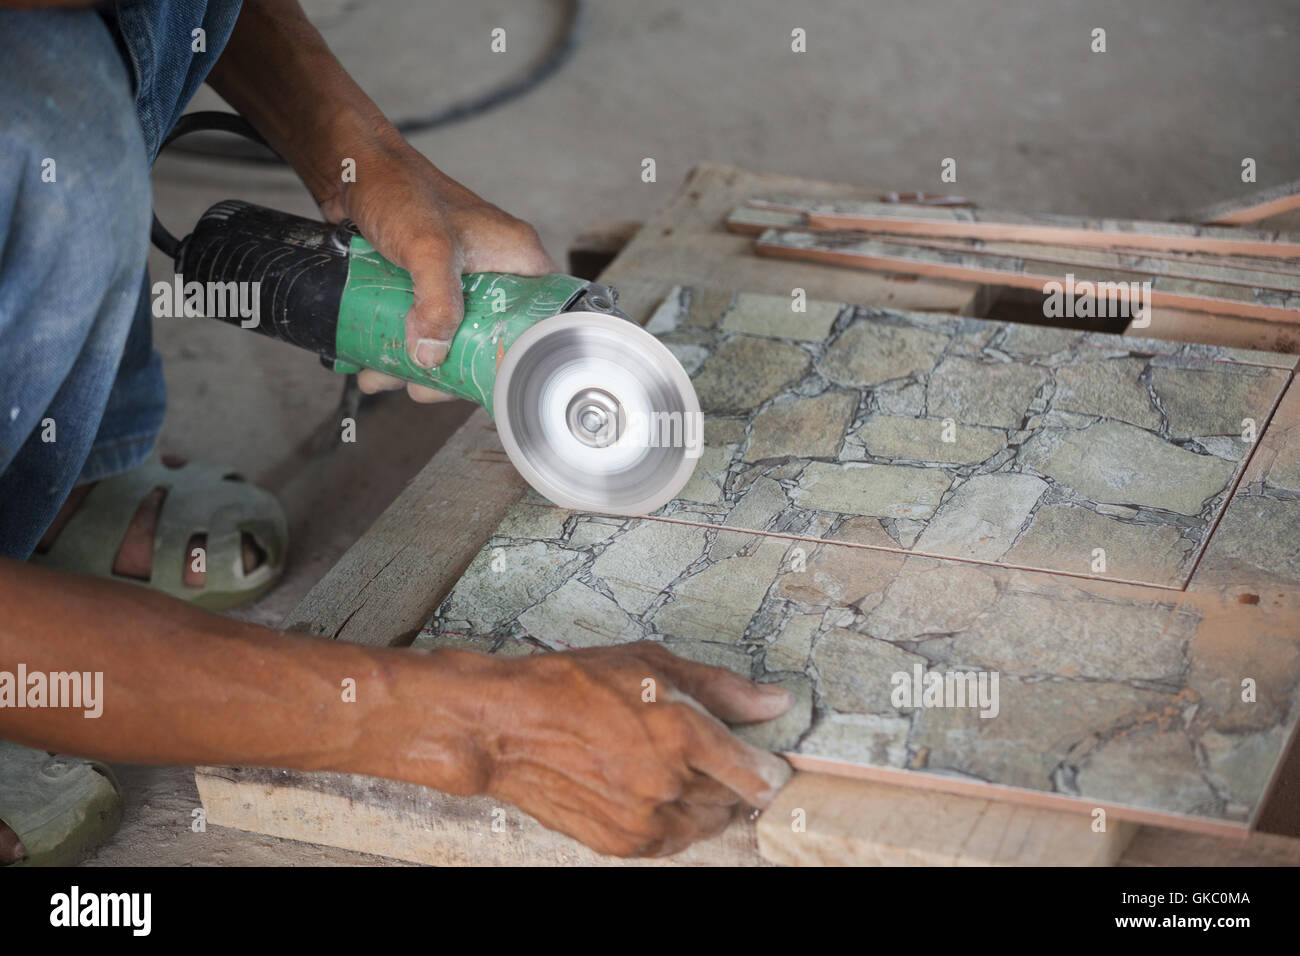 Cut ceramic tile with grinder